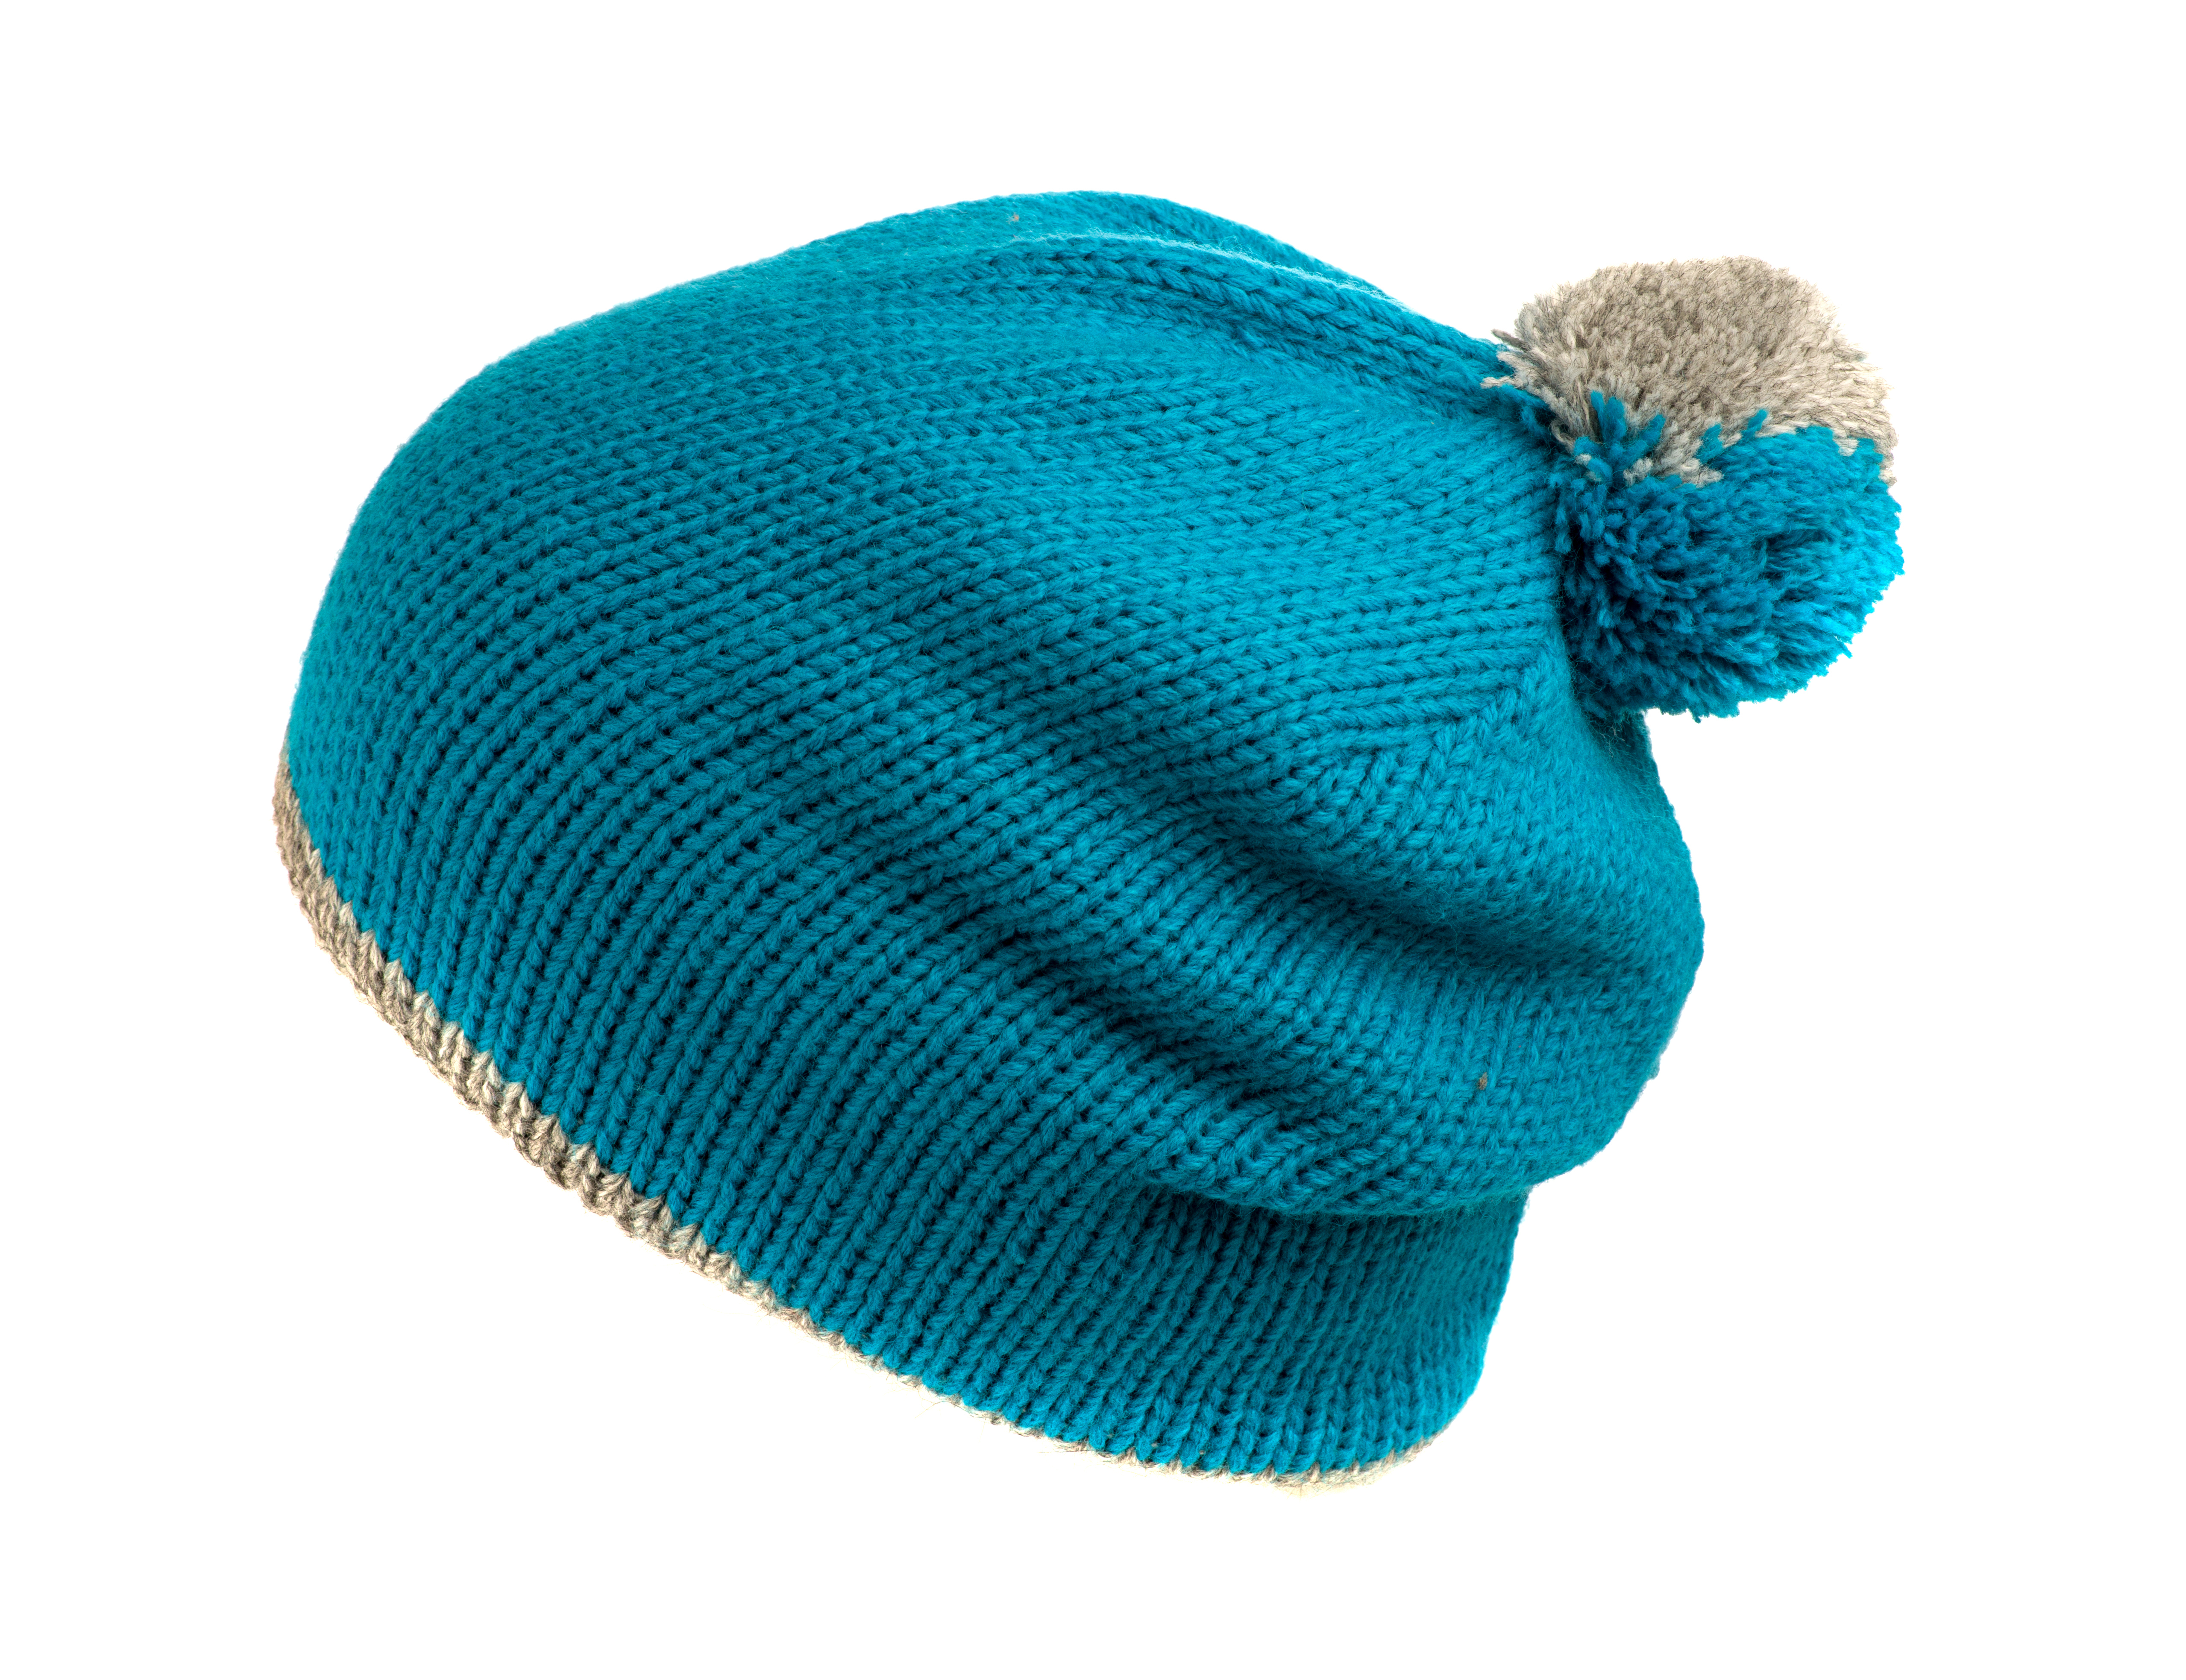 Custom made knitted hats (5)